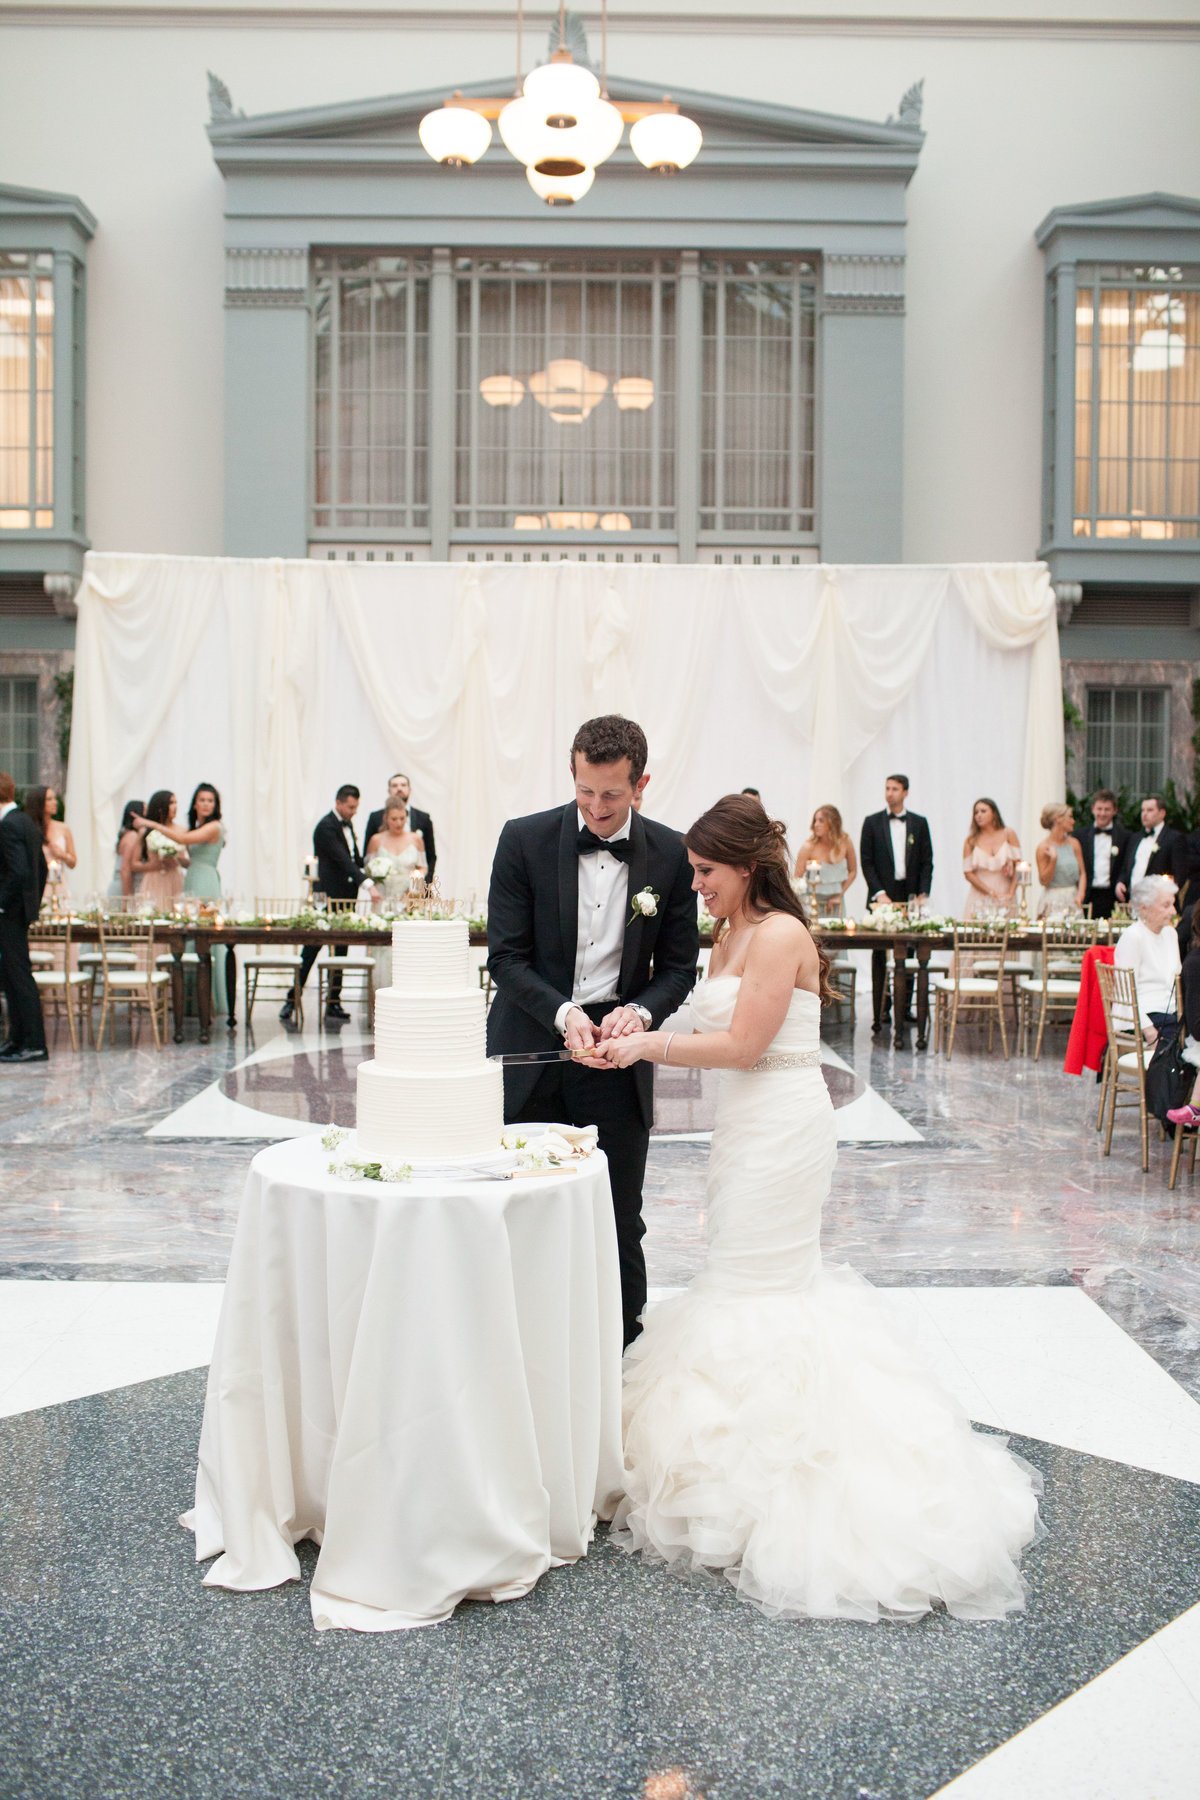 Nicole and Paul Wedding - Natalie Probst Photography 677